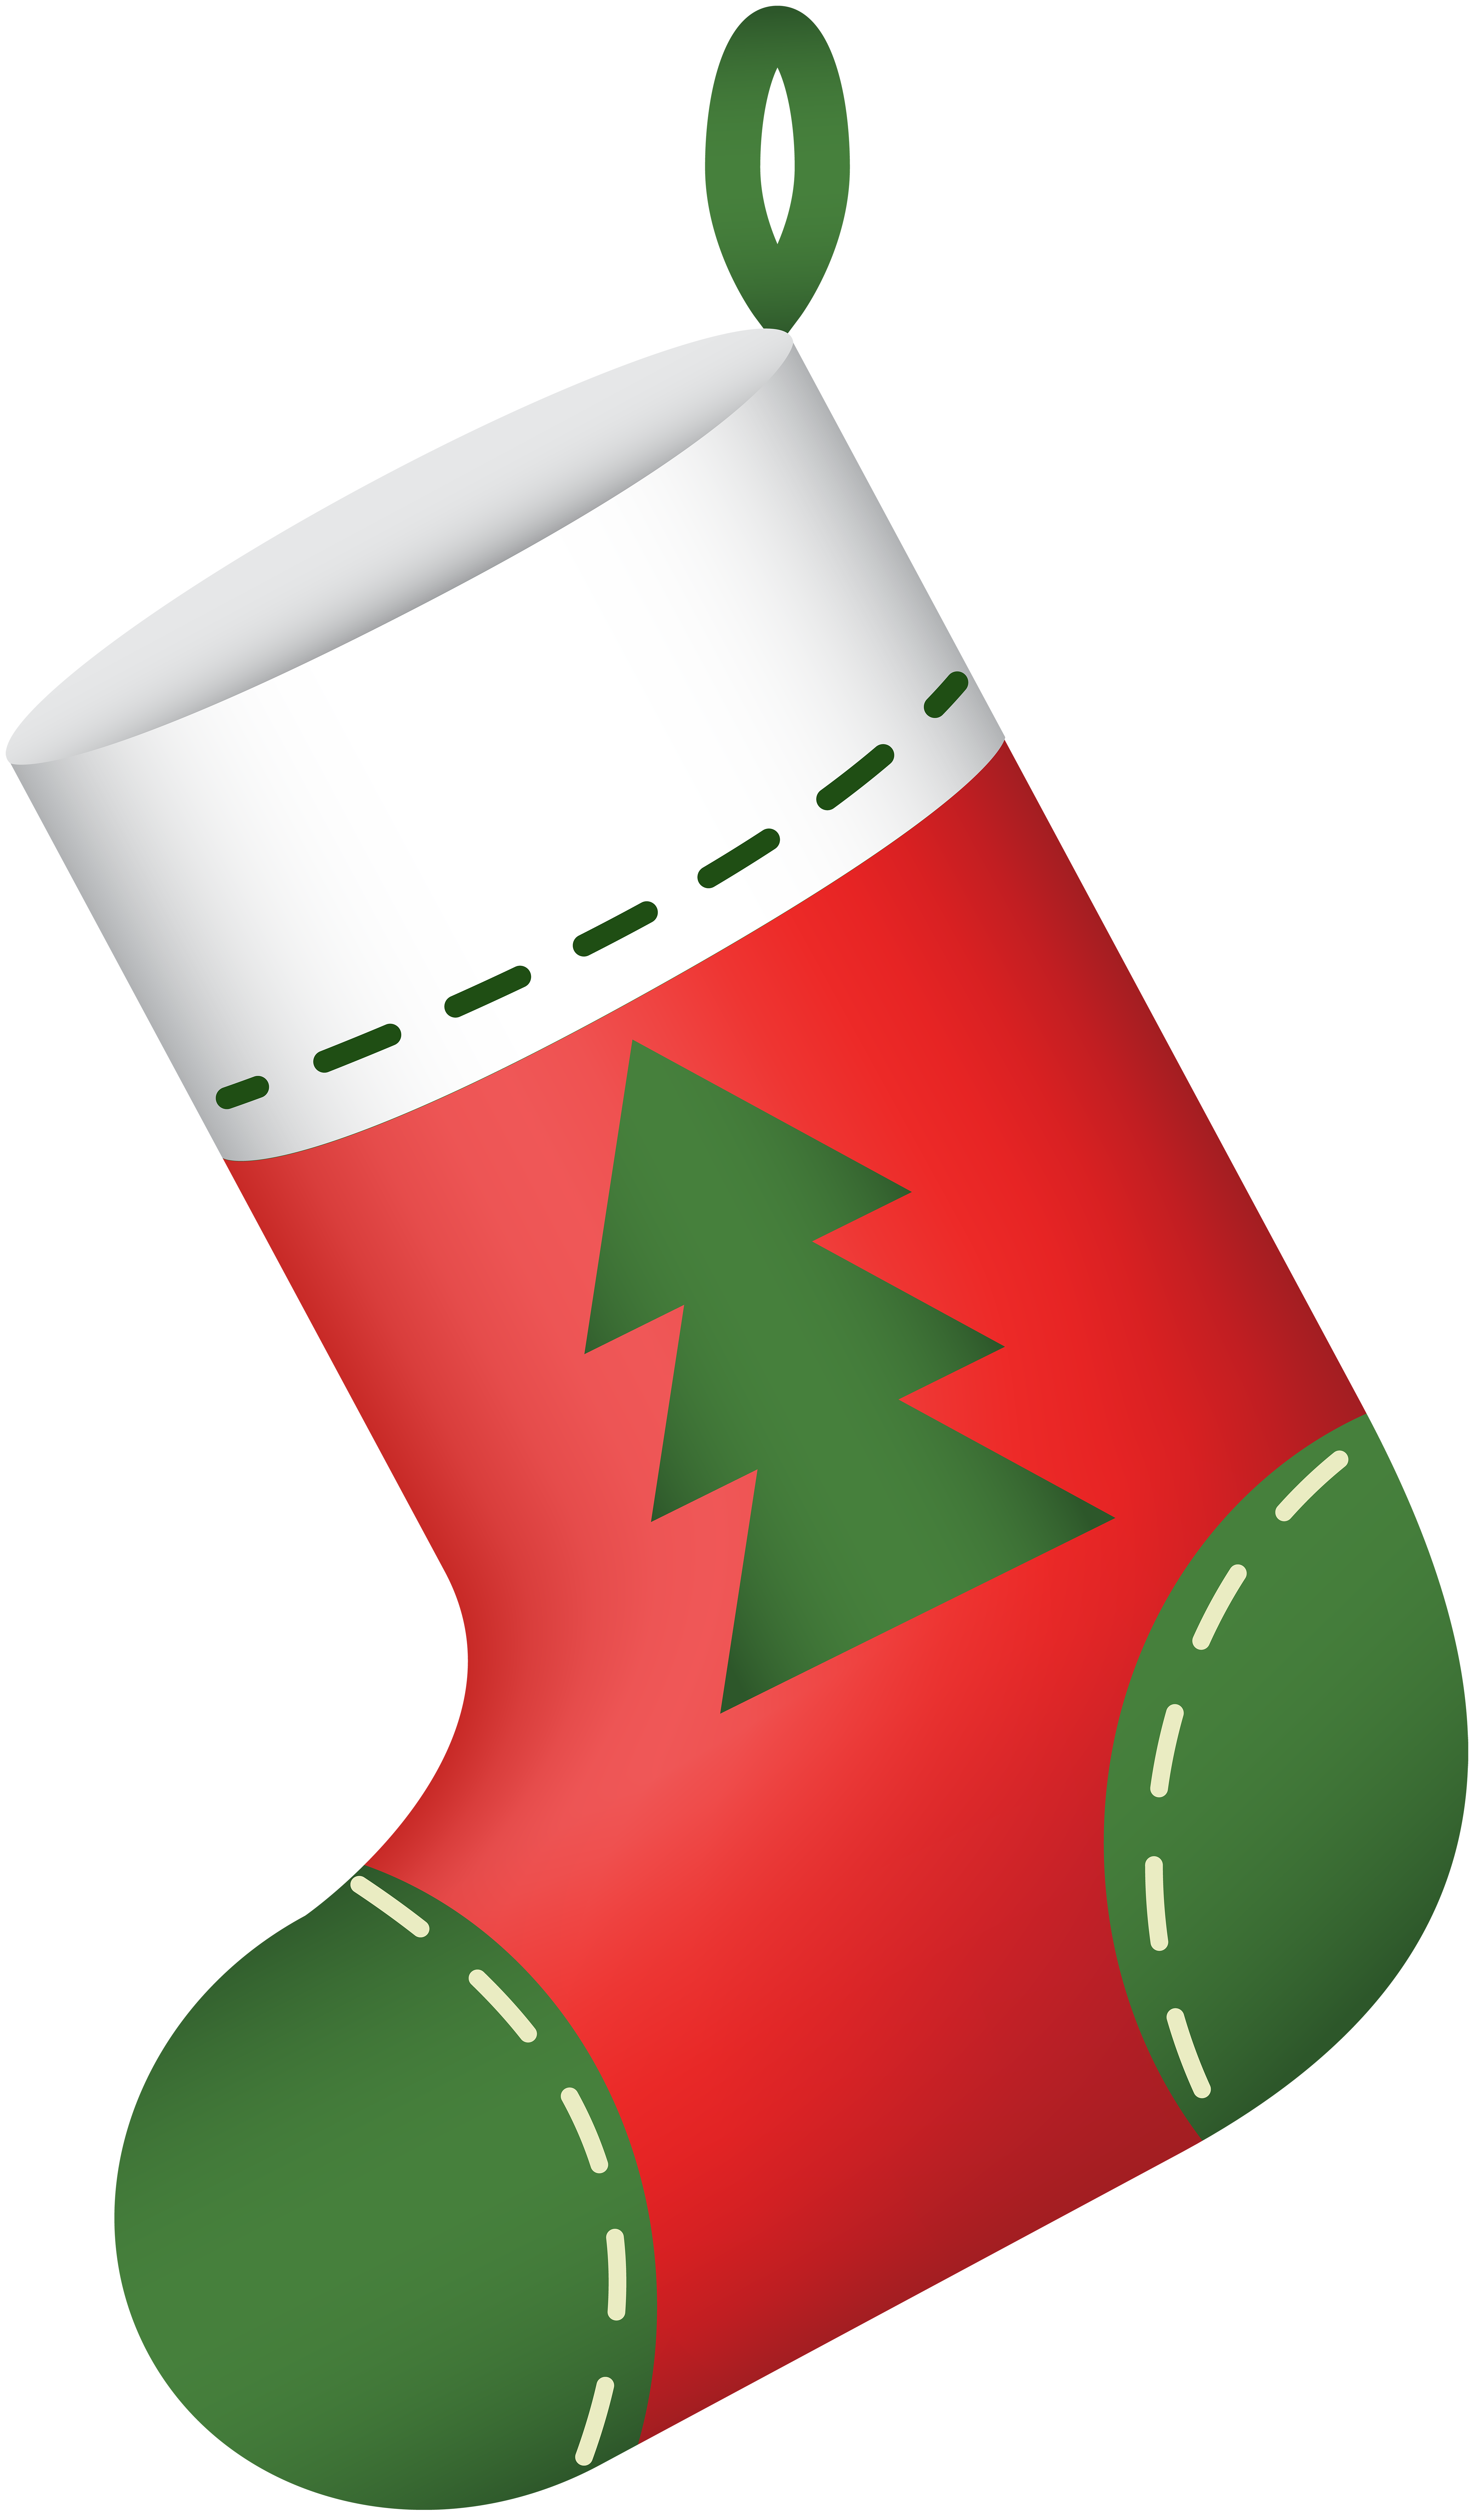 image freeuse download Stocking clip. Christmas red png art.